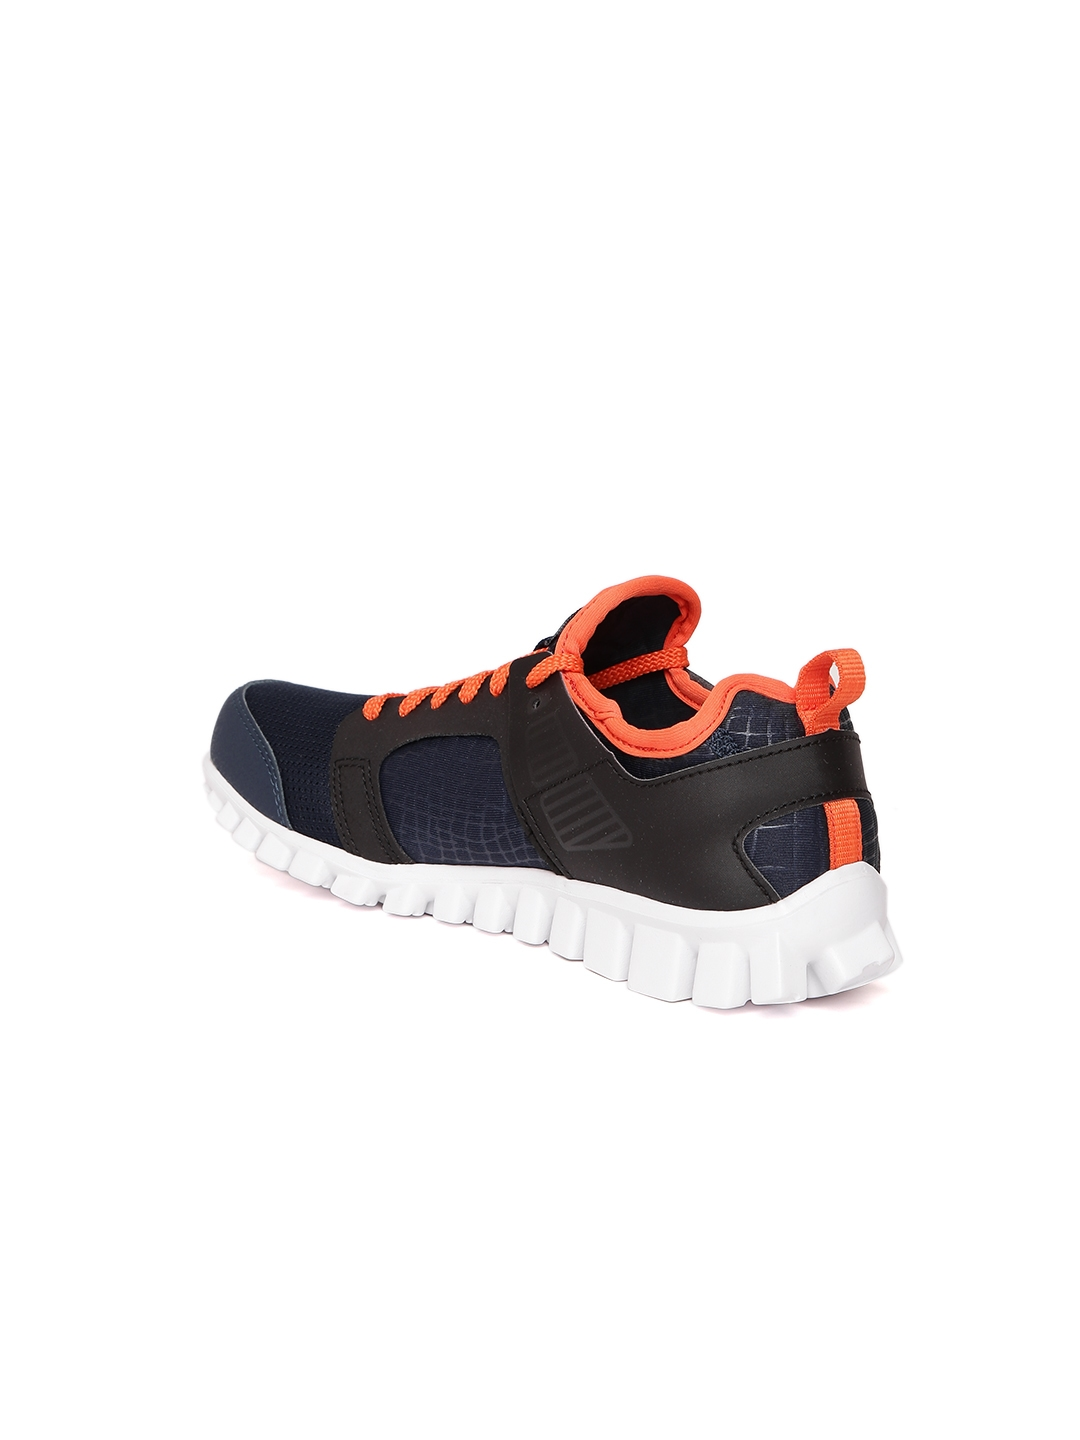 2676ddea877 Buy Reebok Boys Navy Blue   Black Amaze Xtreme Running Shoes ...